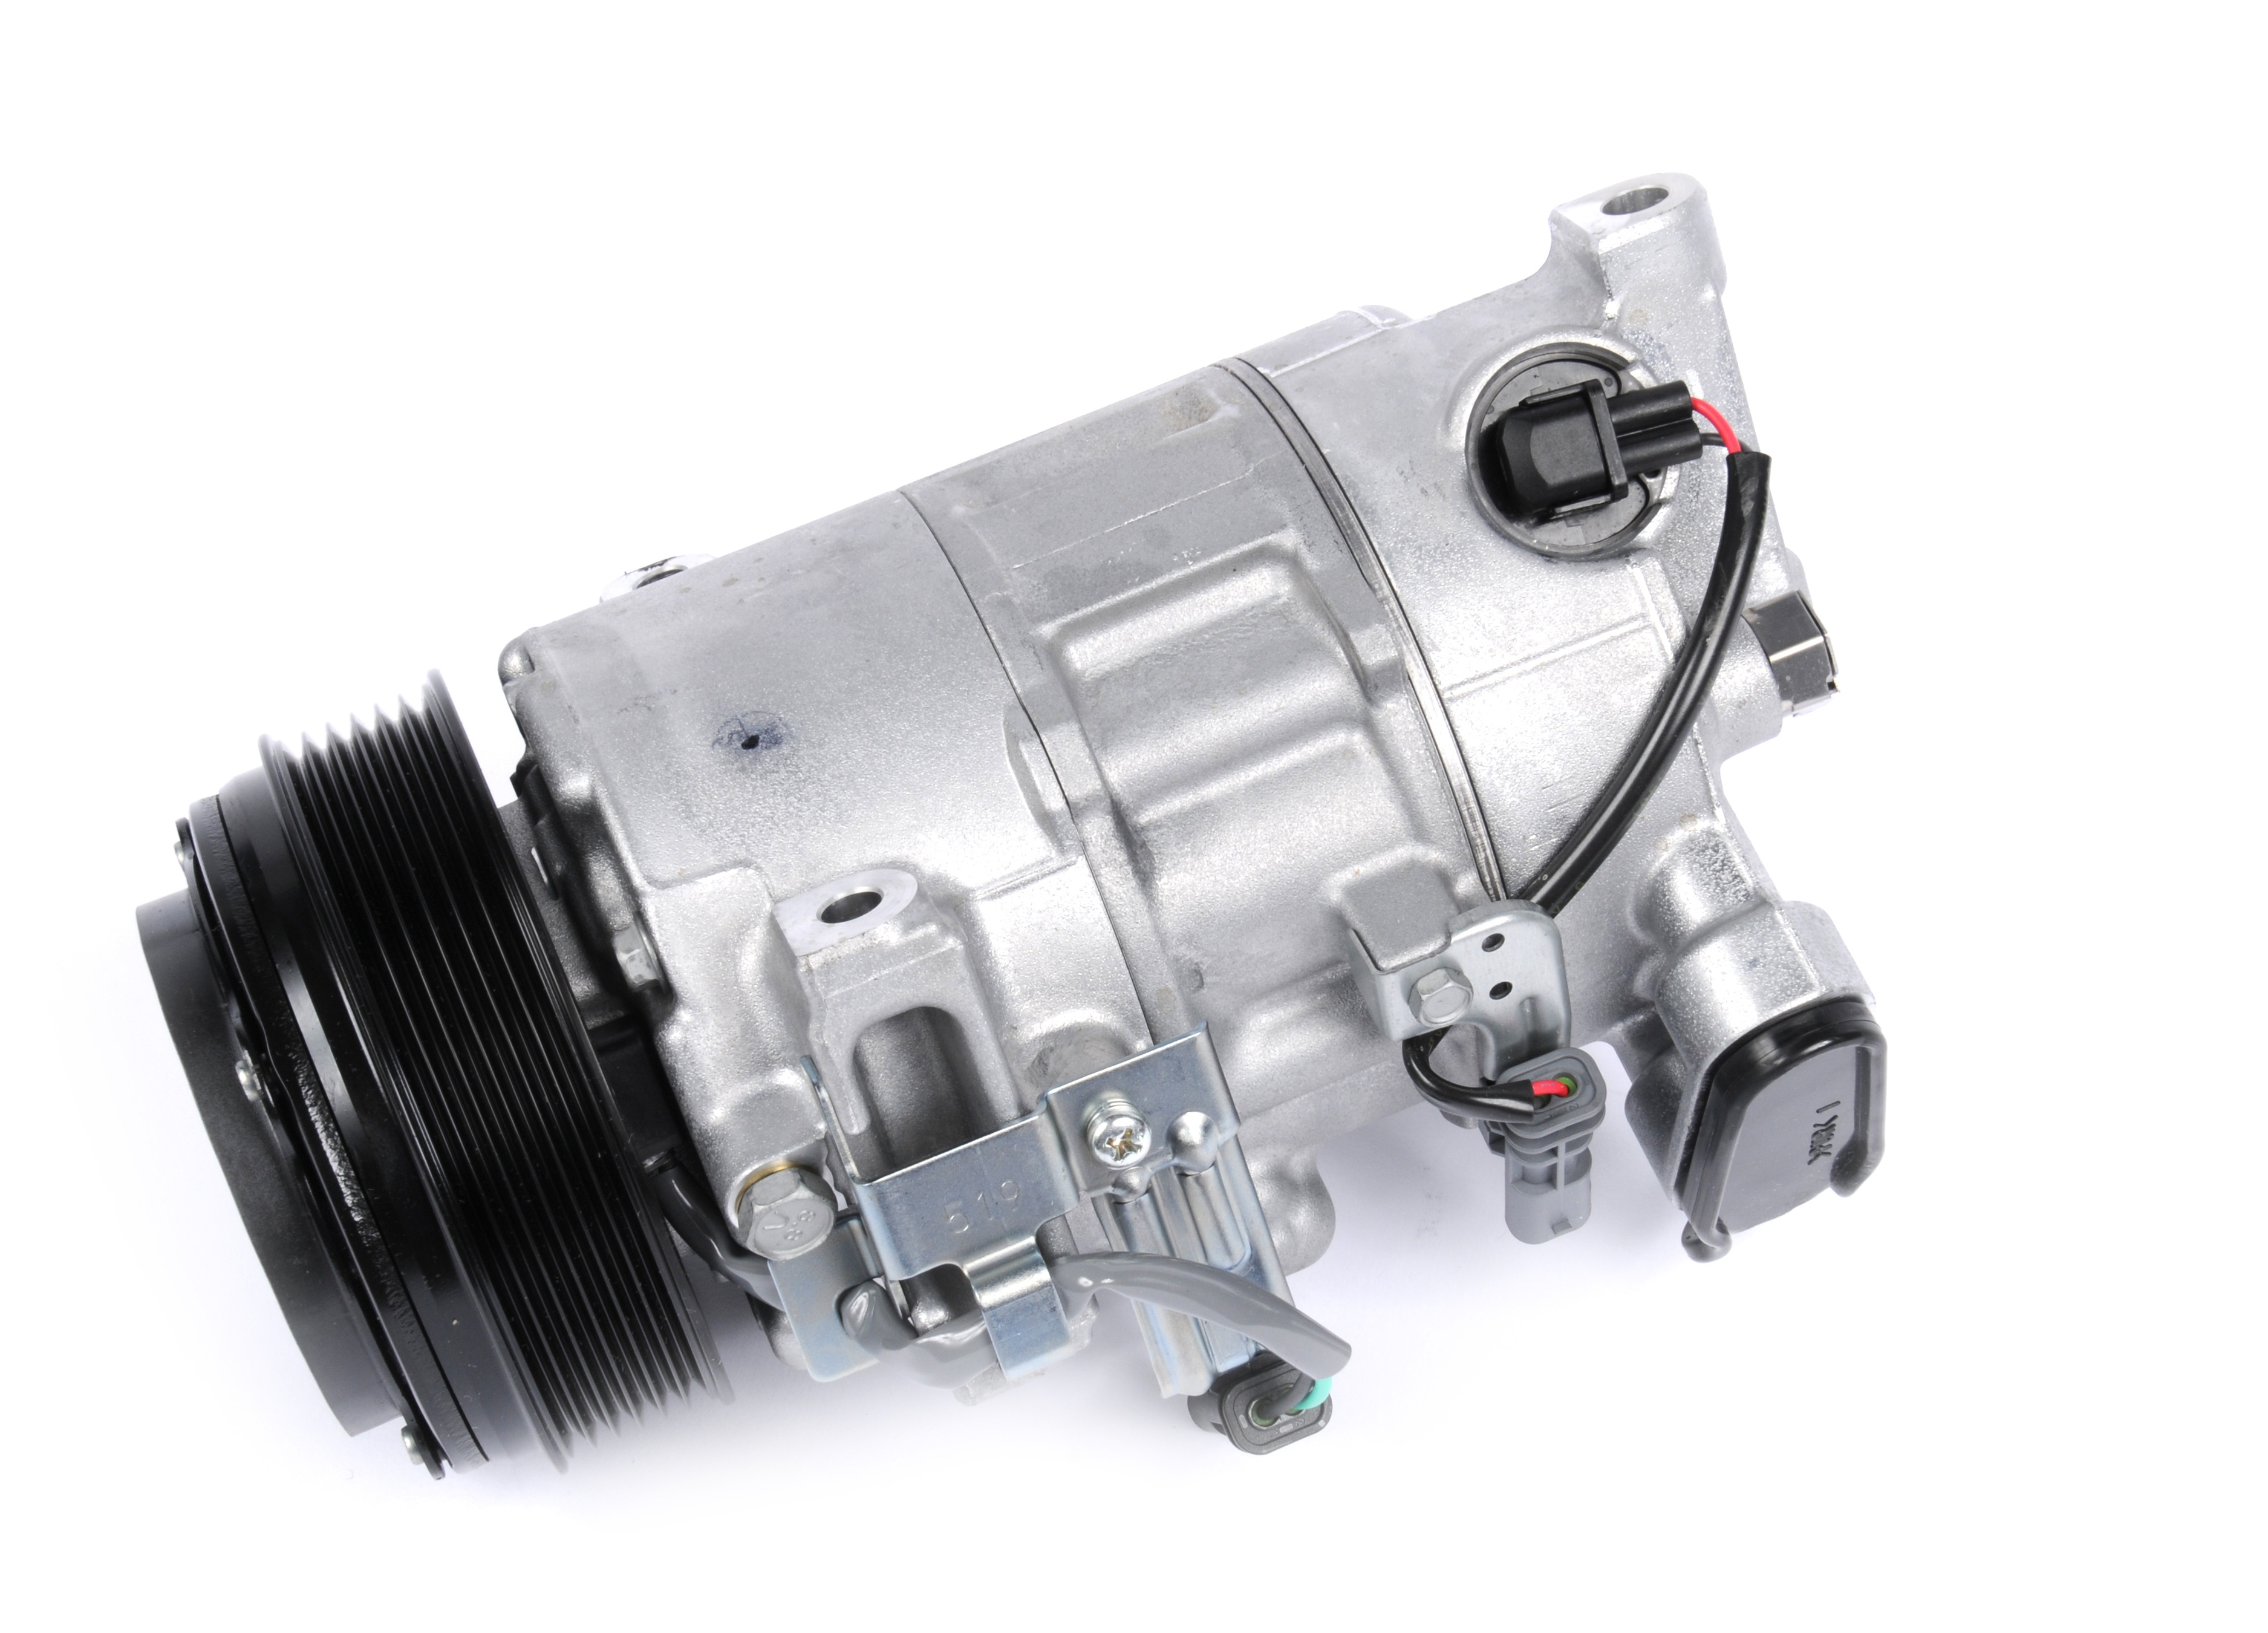 ACDELCO OE SERVICE - A/C Compressor & Clutch - DCB 15-22307